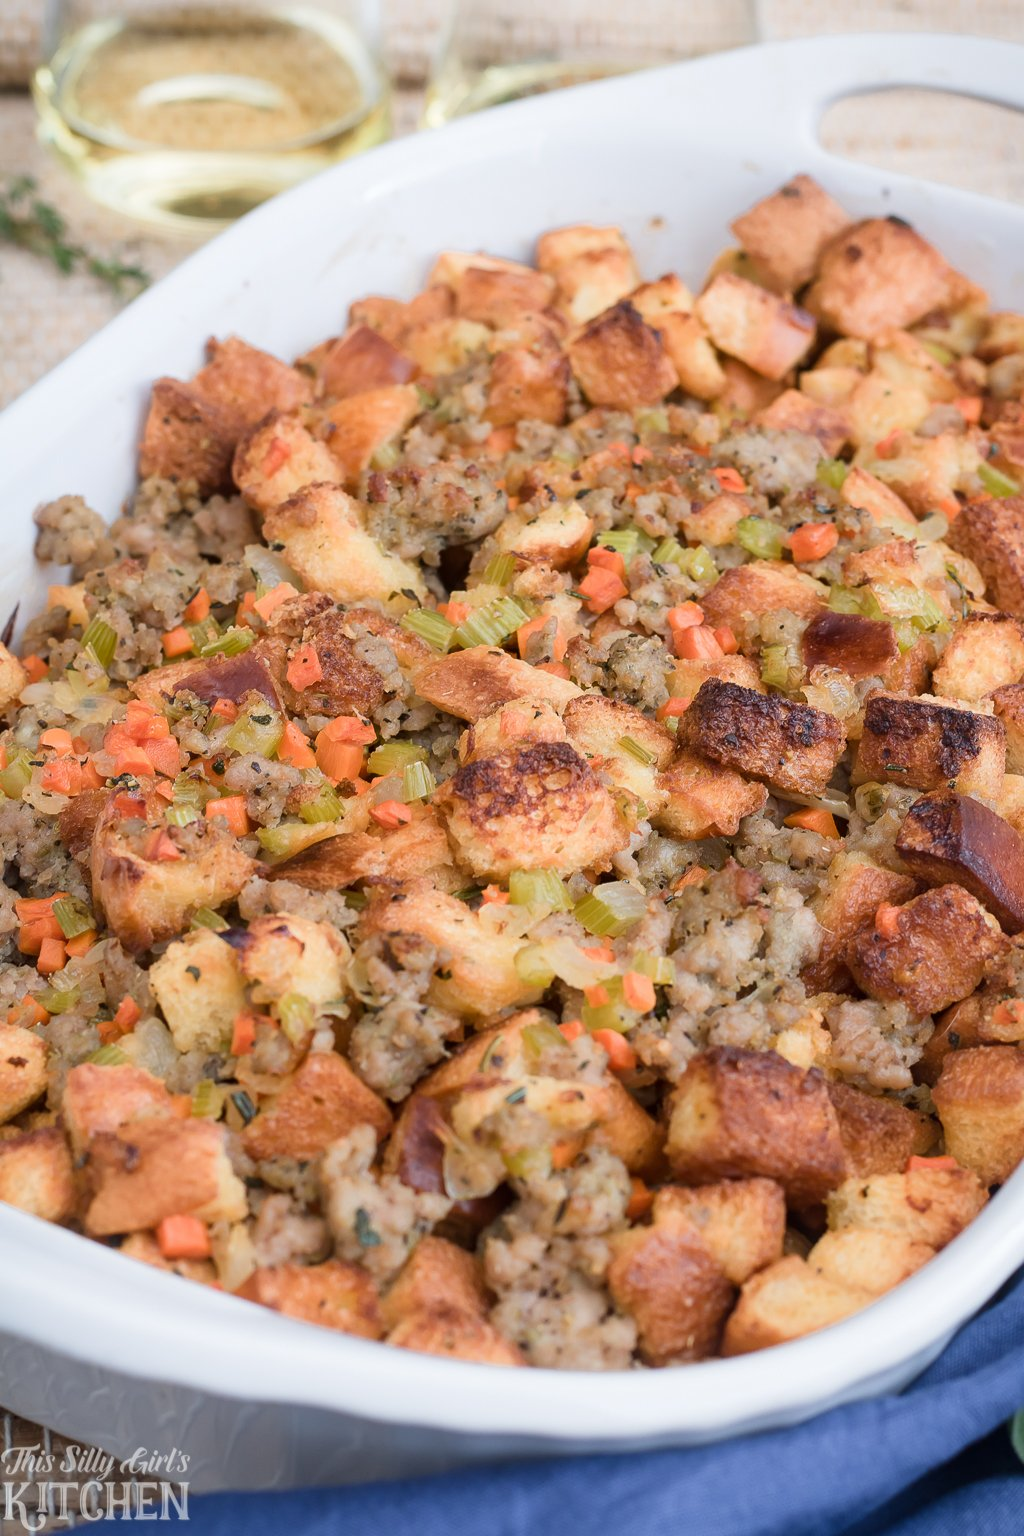 Italian Sausage Stuffing, made with homemade Italian sausage and brioche, a new family favorite! Recipe from ThisSillyGirlsKitchen.com #italiansausage #stuffing #dressing #thanksgiving